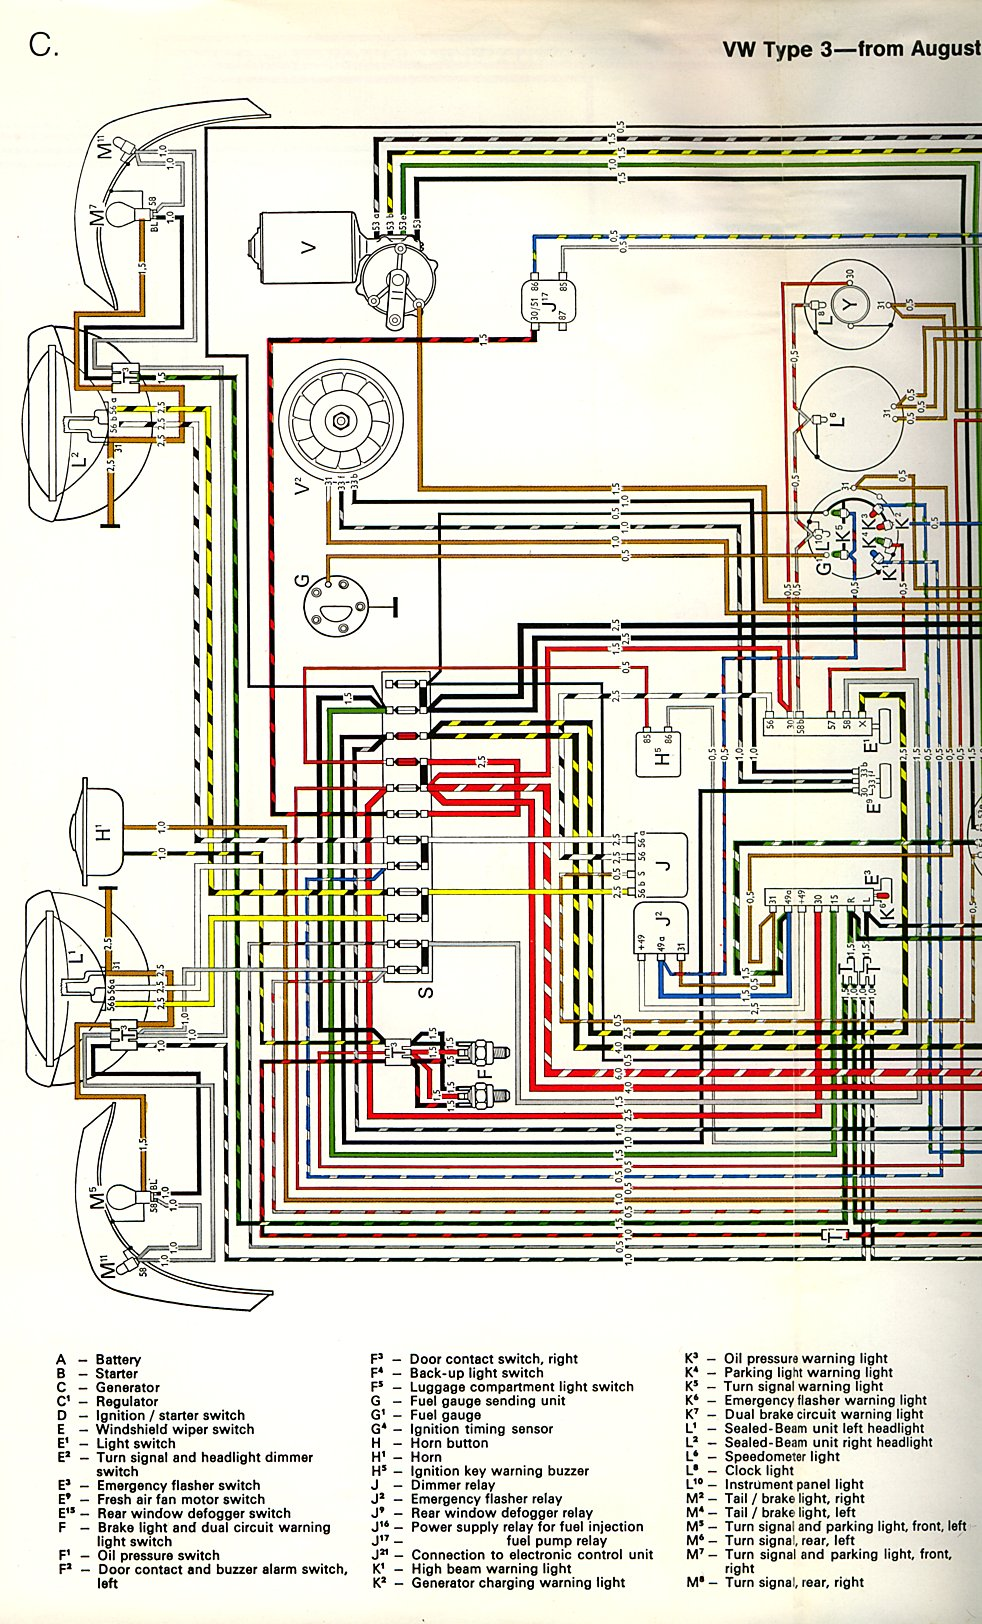 73 Vw Squareback Wiring Diagram Trusted Diagrams Volkswagen Engine 1973 Type 3 Rh Dafpods Co 74 Beetle